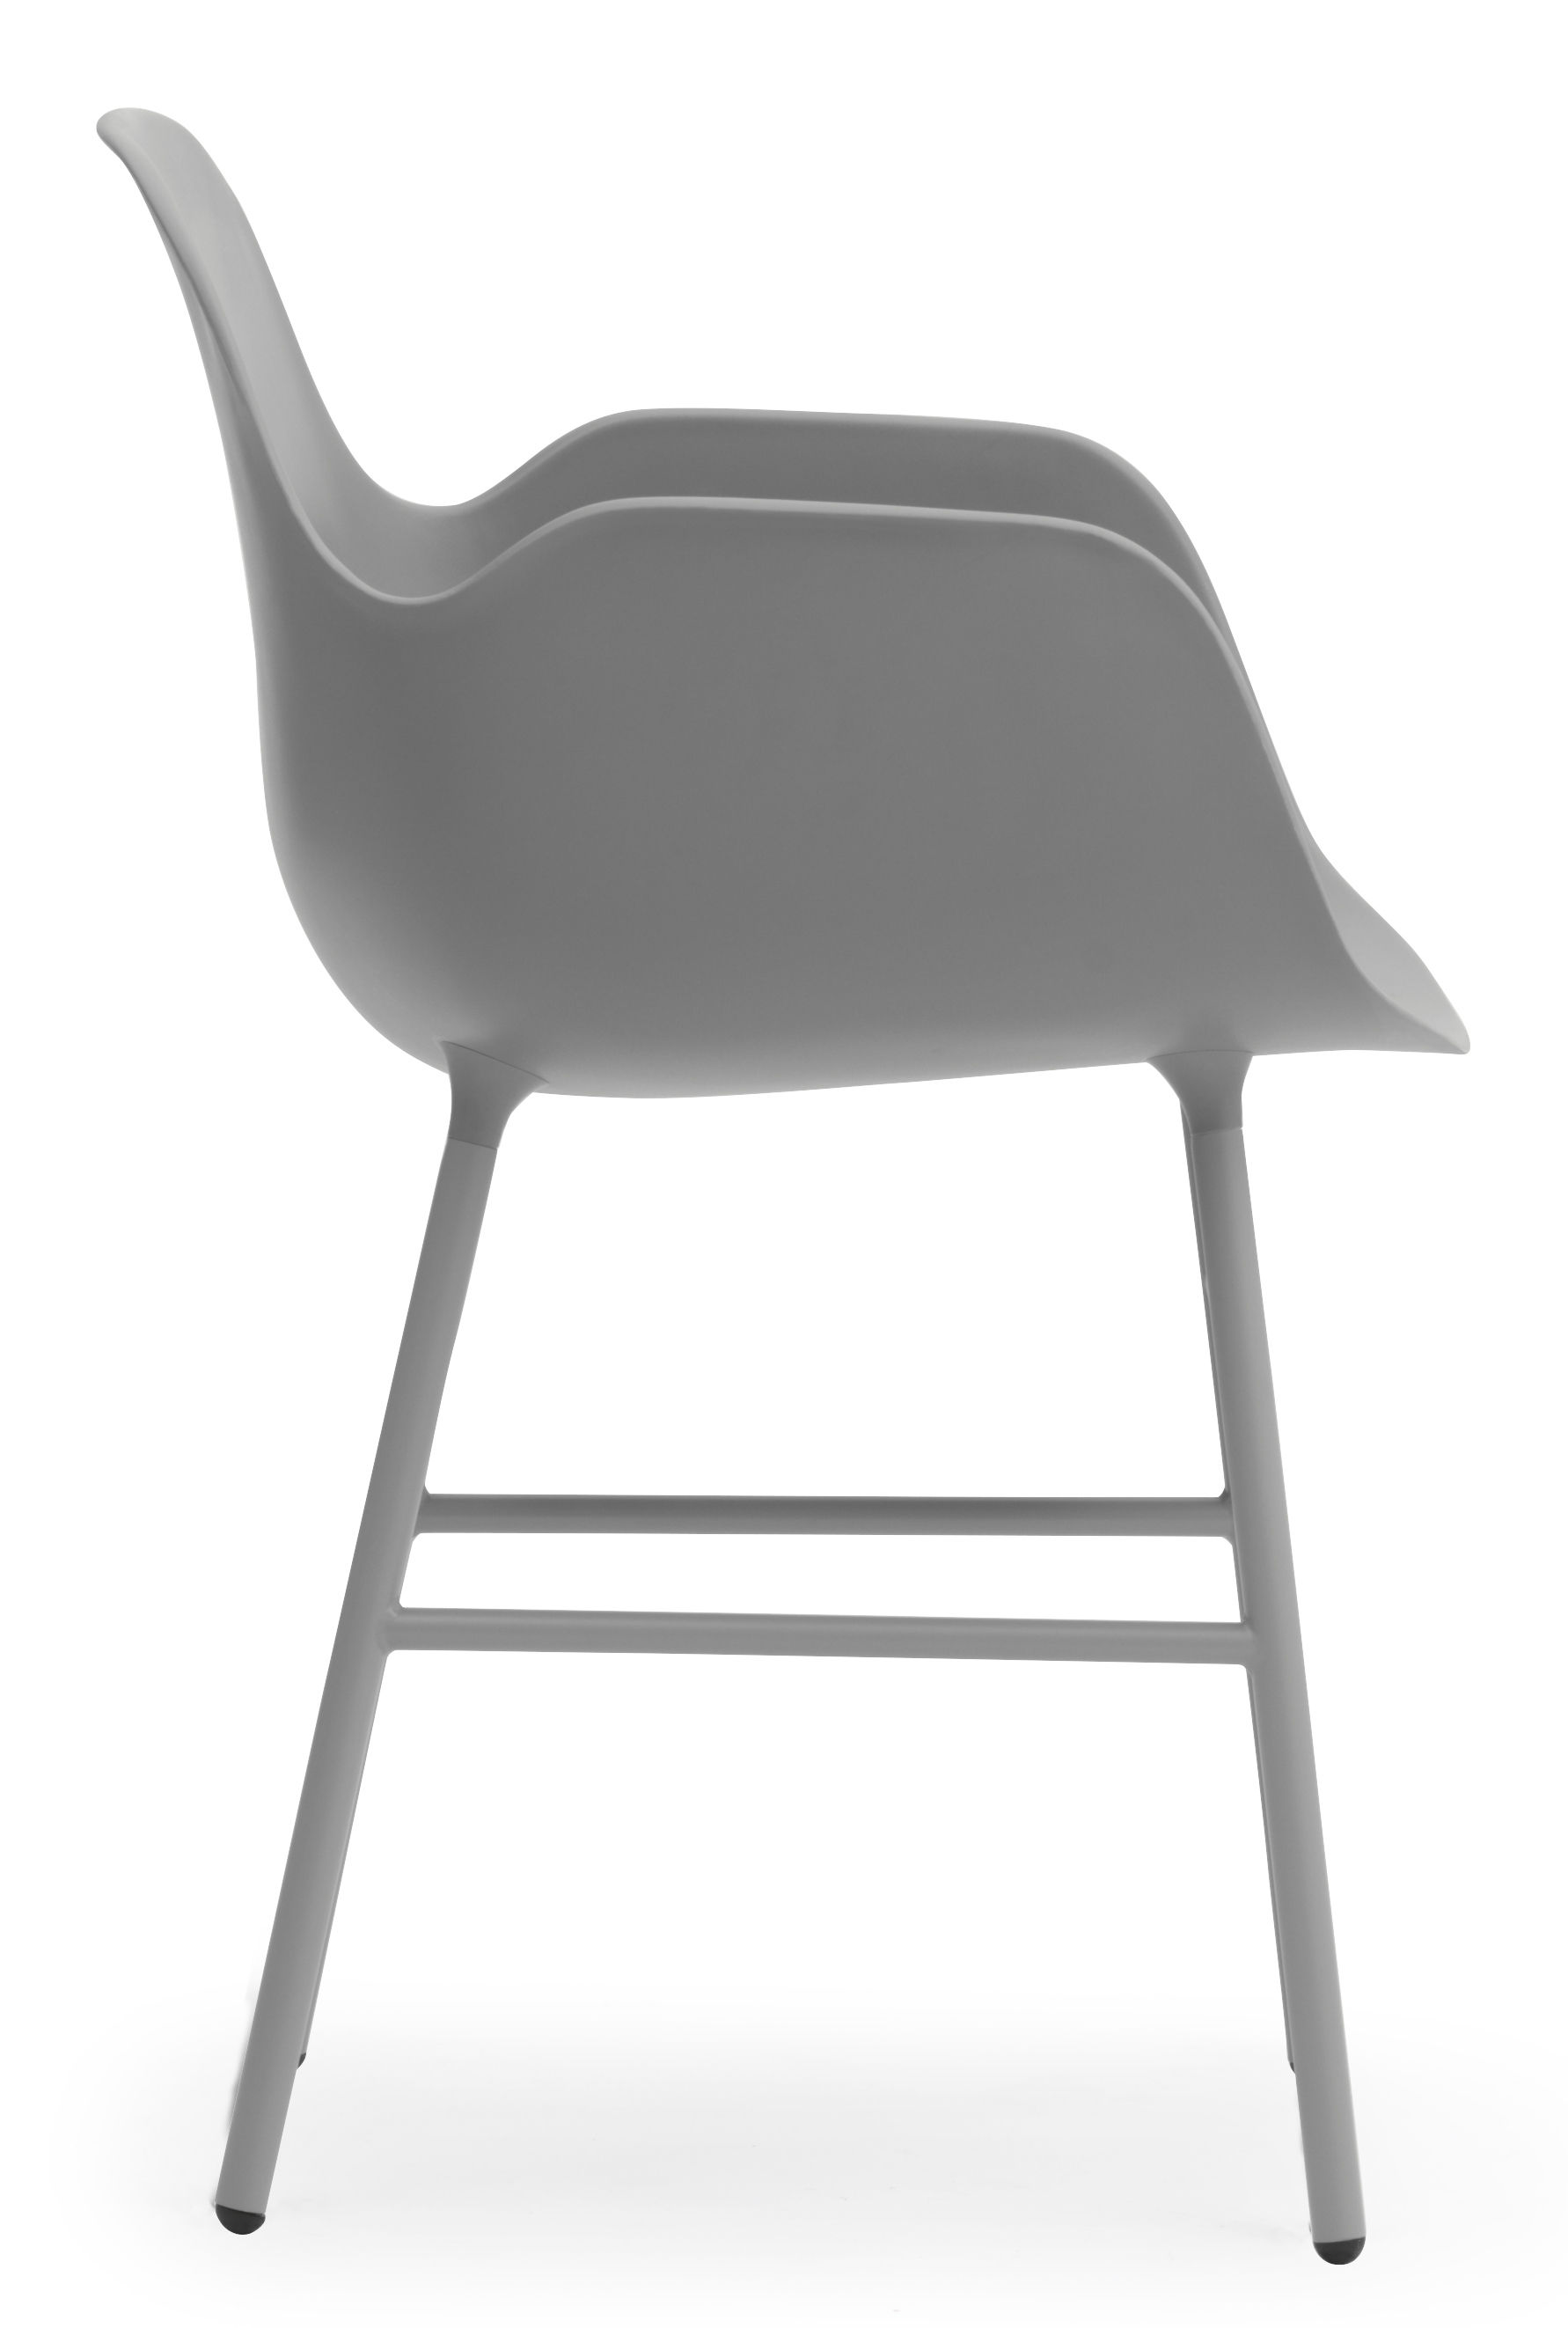 fauteuil form pied m tal gris normann copenhagen. Black Bedroom Furniture Sets. Home Design Ideas